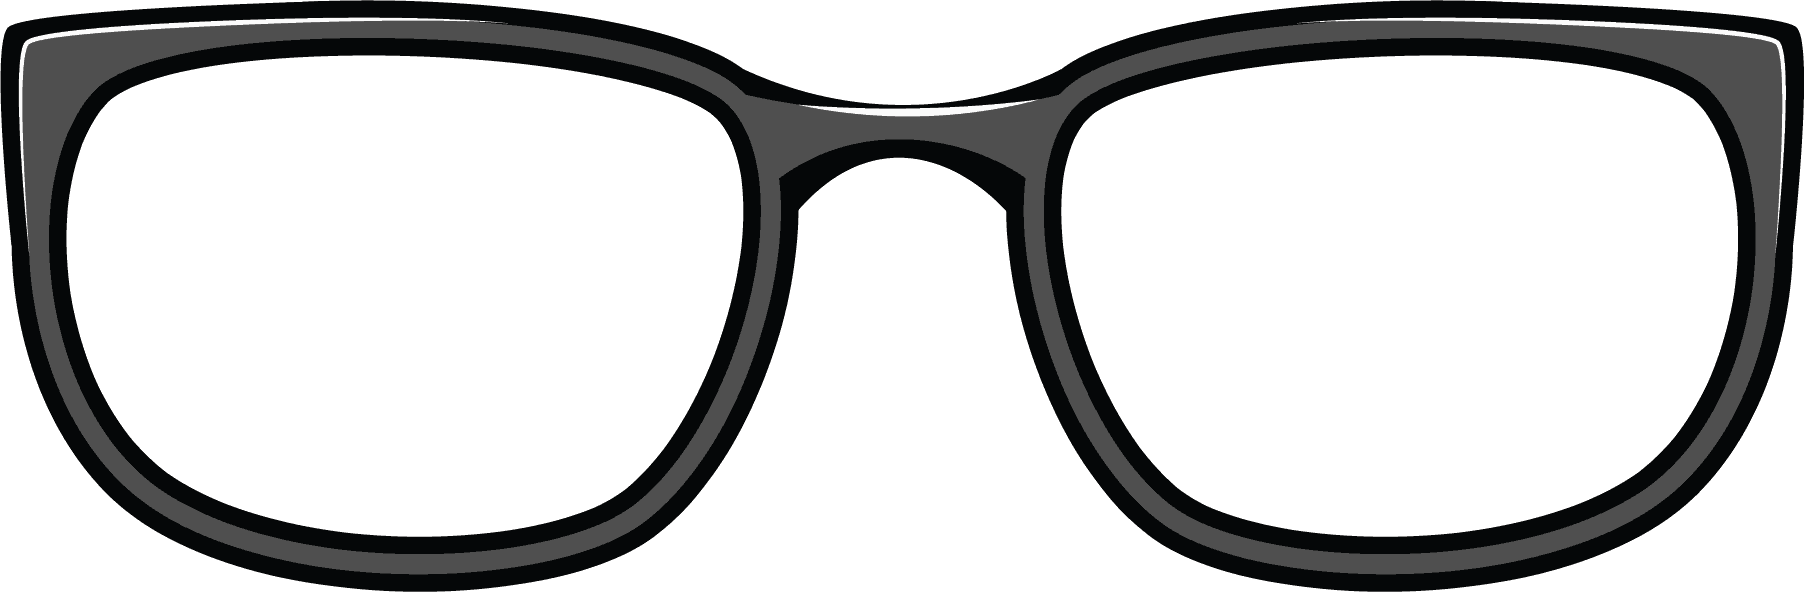 Glasses clipart transparent background